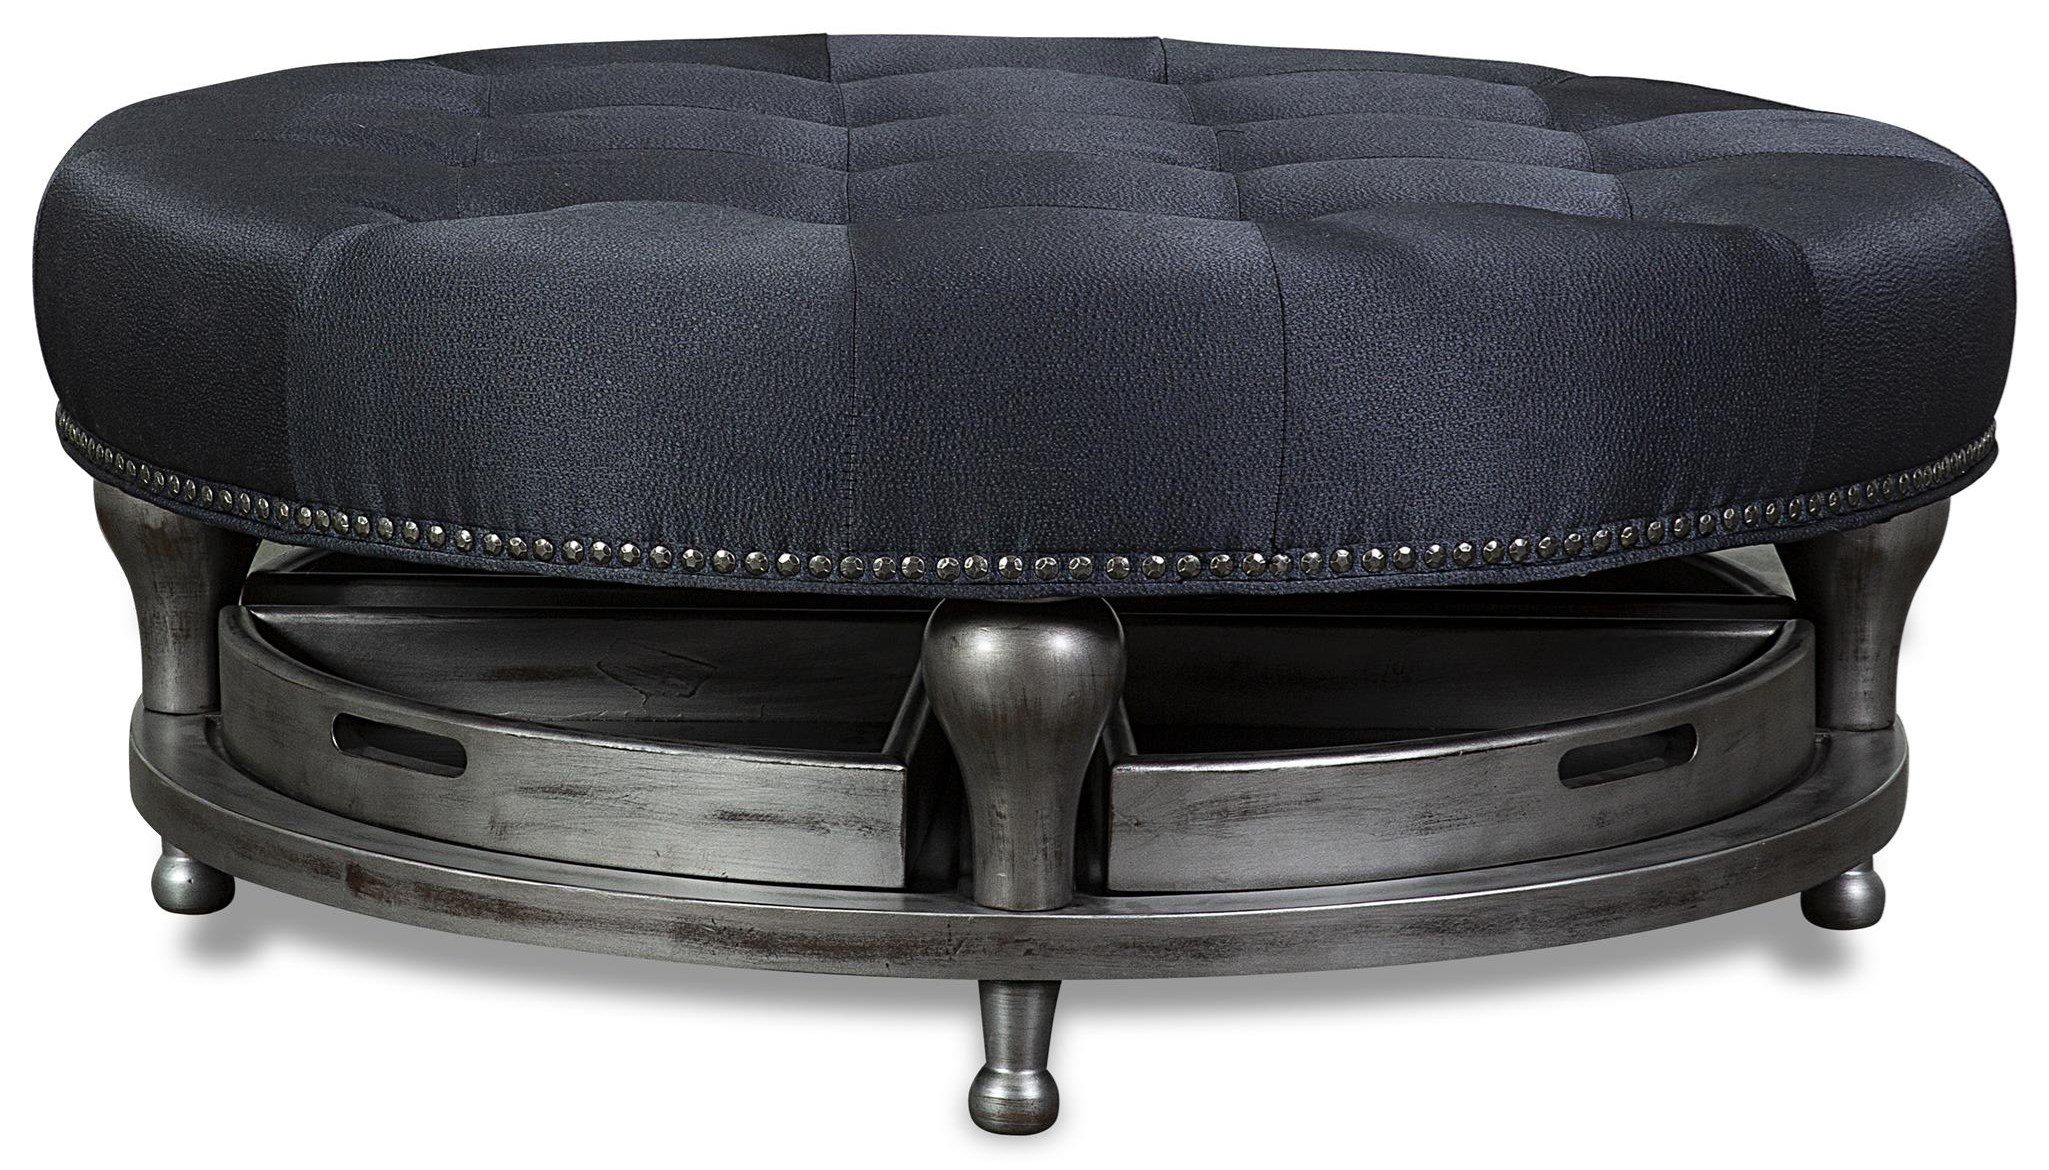 45 Cocktail Ottoman with Tray by Aria Designs at Stoney Creek Furniture